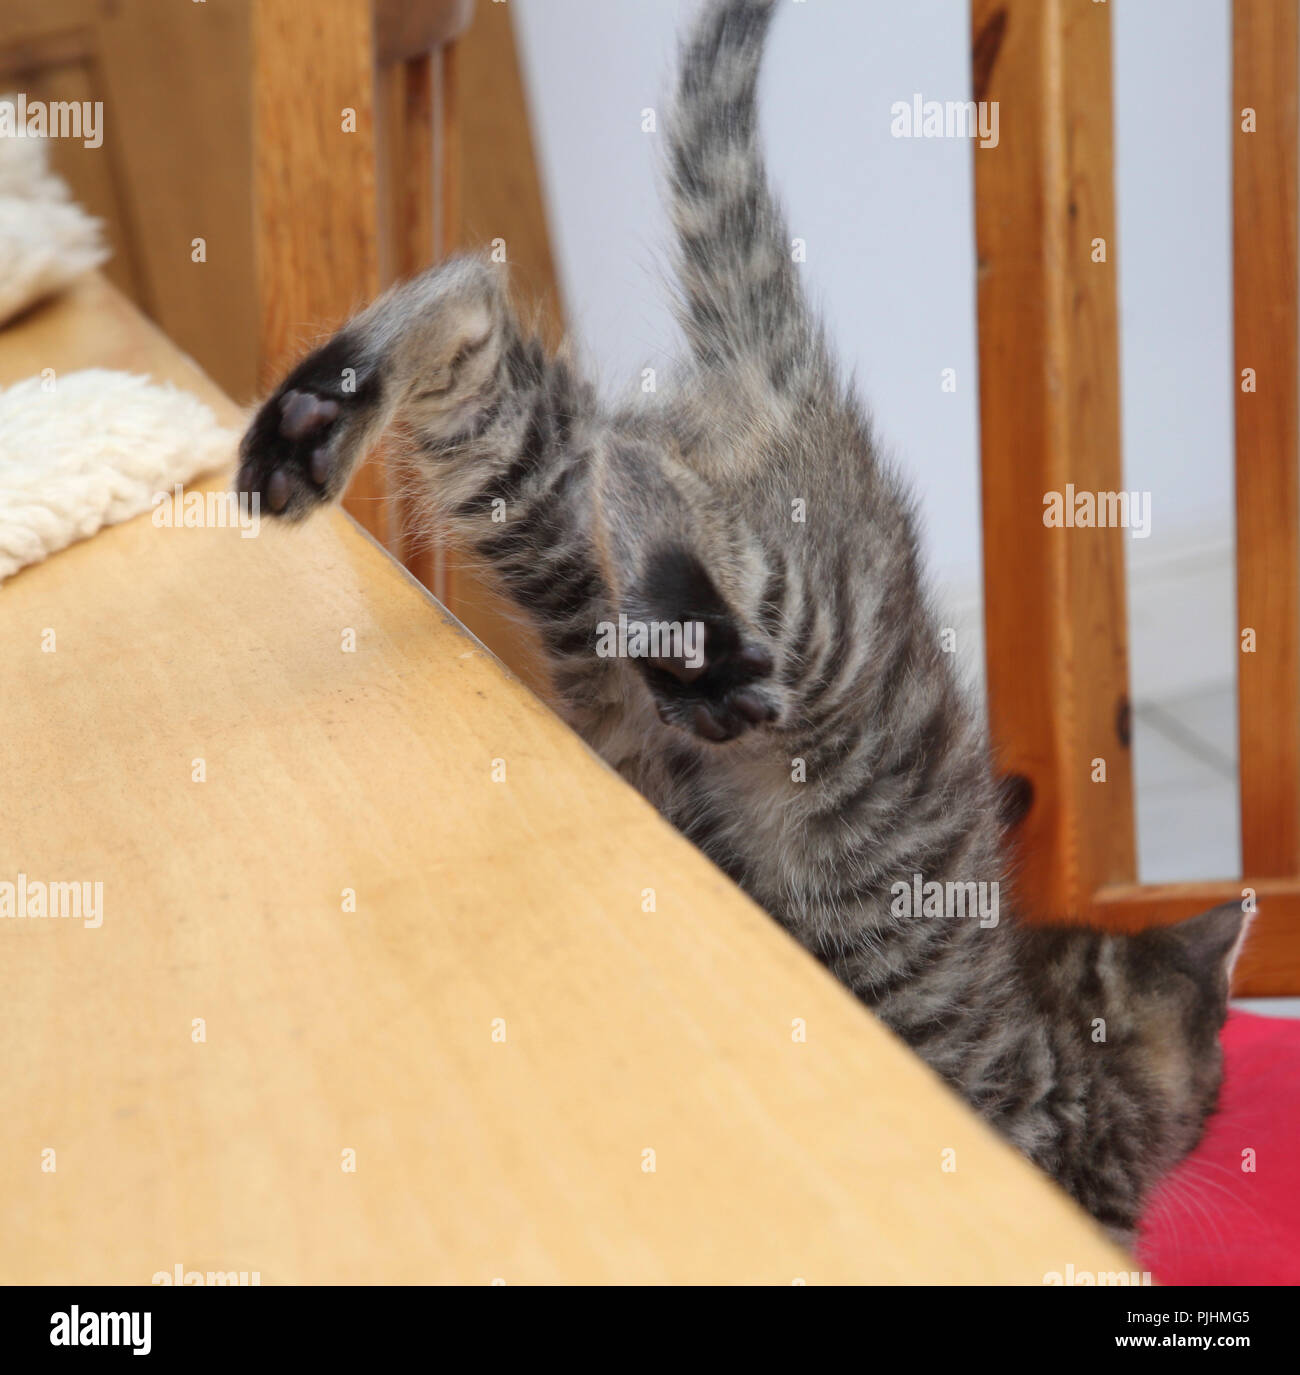 Seven Week Old Male Tabby Kitten Jumping Down from the Table - Stock Image